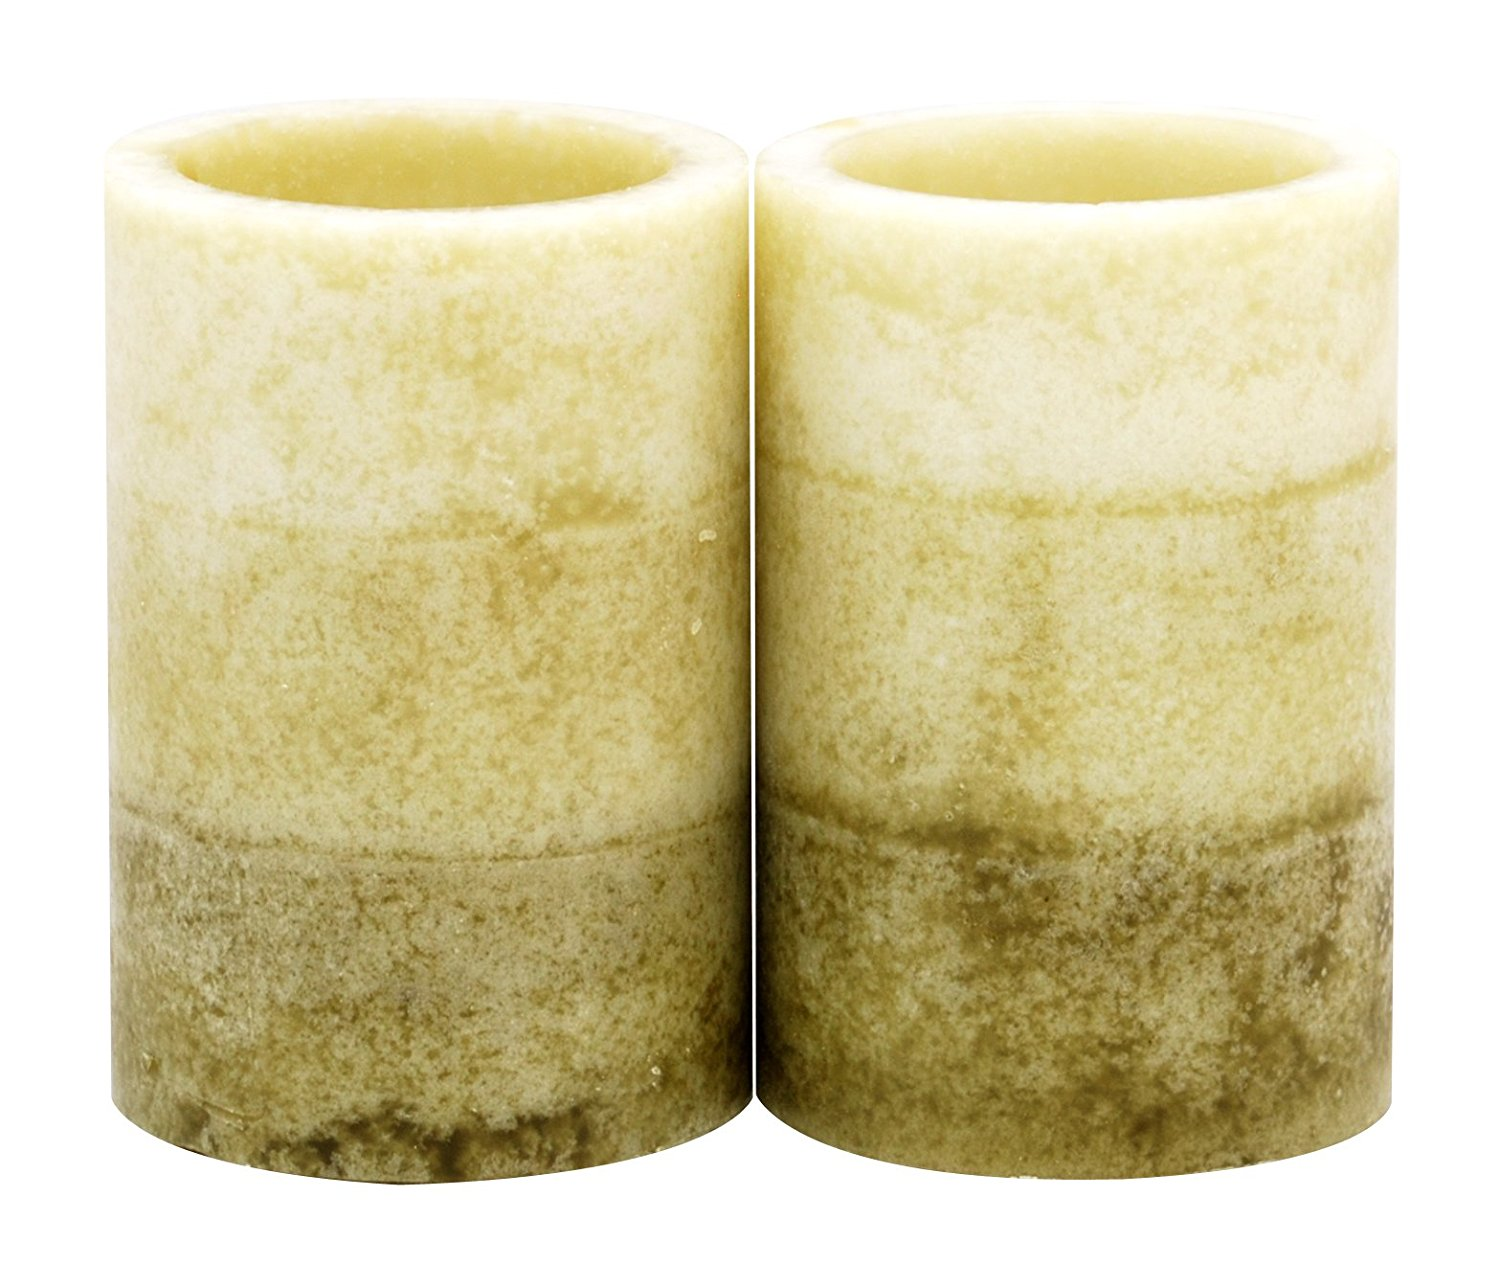 Kiera Grace 2 by 3-Inch Tri-Layer LED Pillar Candles, Mini, Citrus and Sage Fragrance, Set of 2